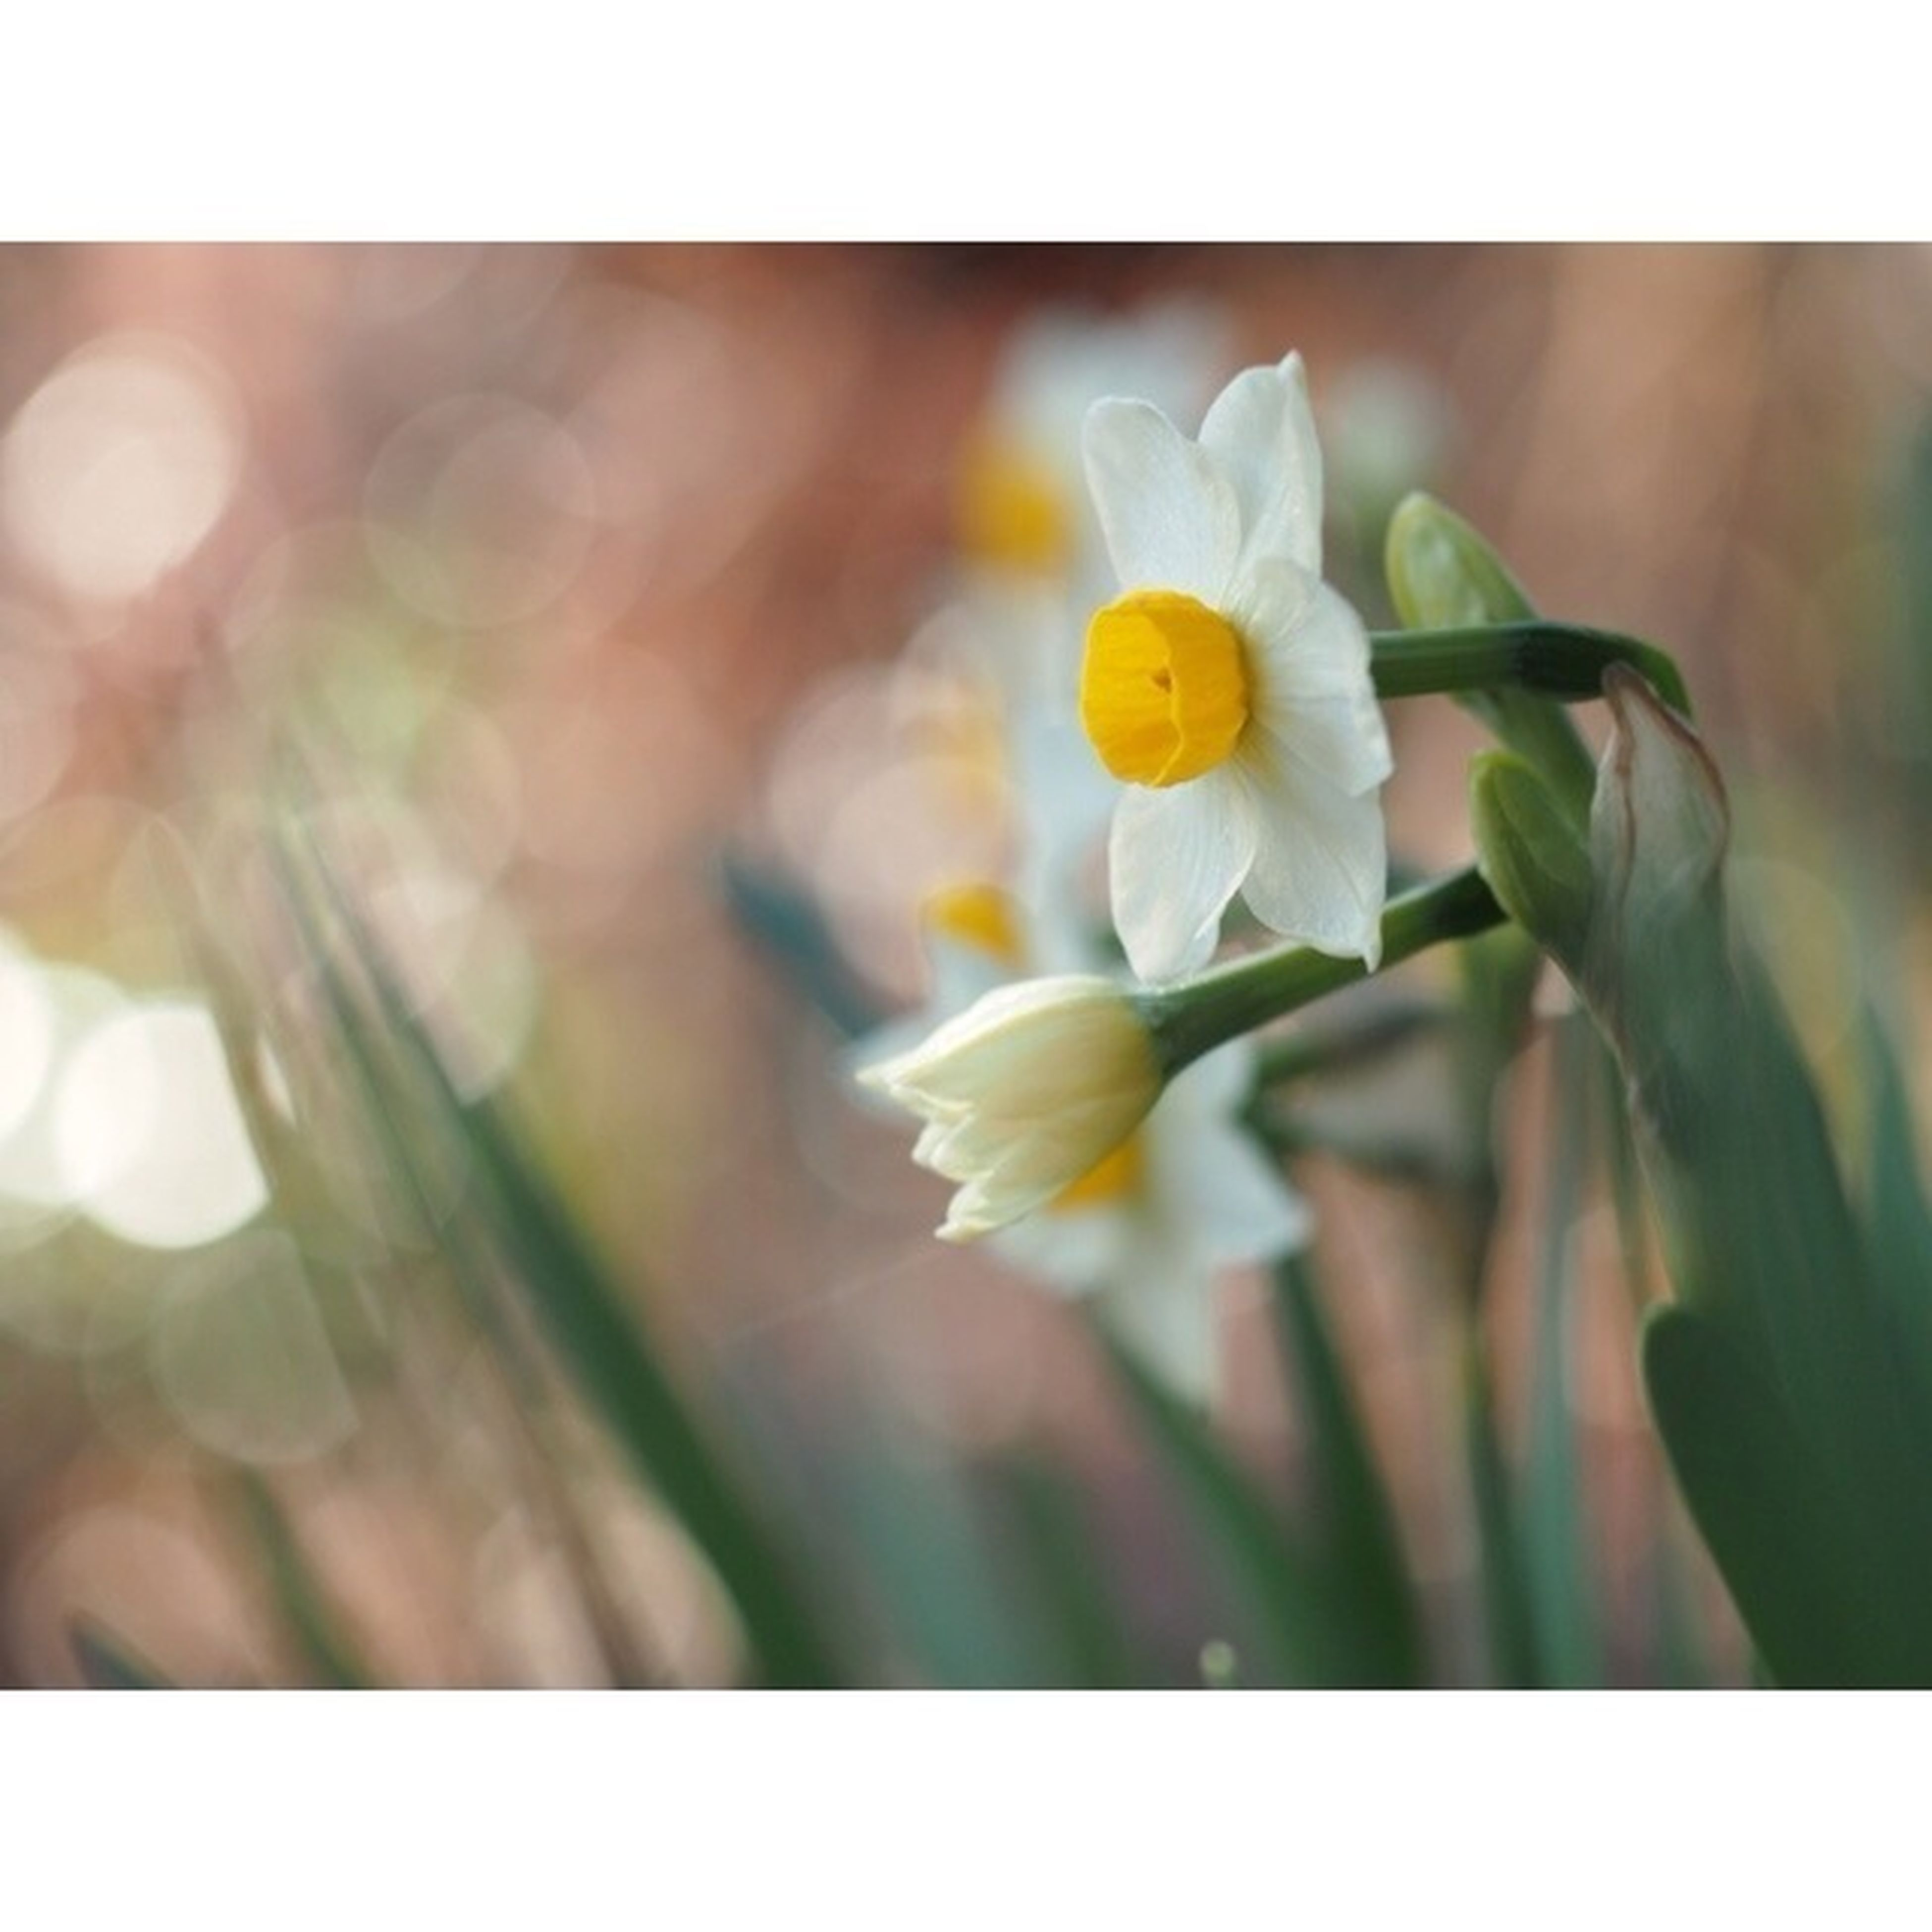 flower, petal, transfer print, freshness, fragility, flower head, growth, beauty in nature, yellow, auto post production filter, blooming, close-up, nature, focus on foreground, plant, pollen, white color, selective focus, single flower, in bloom